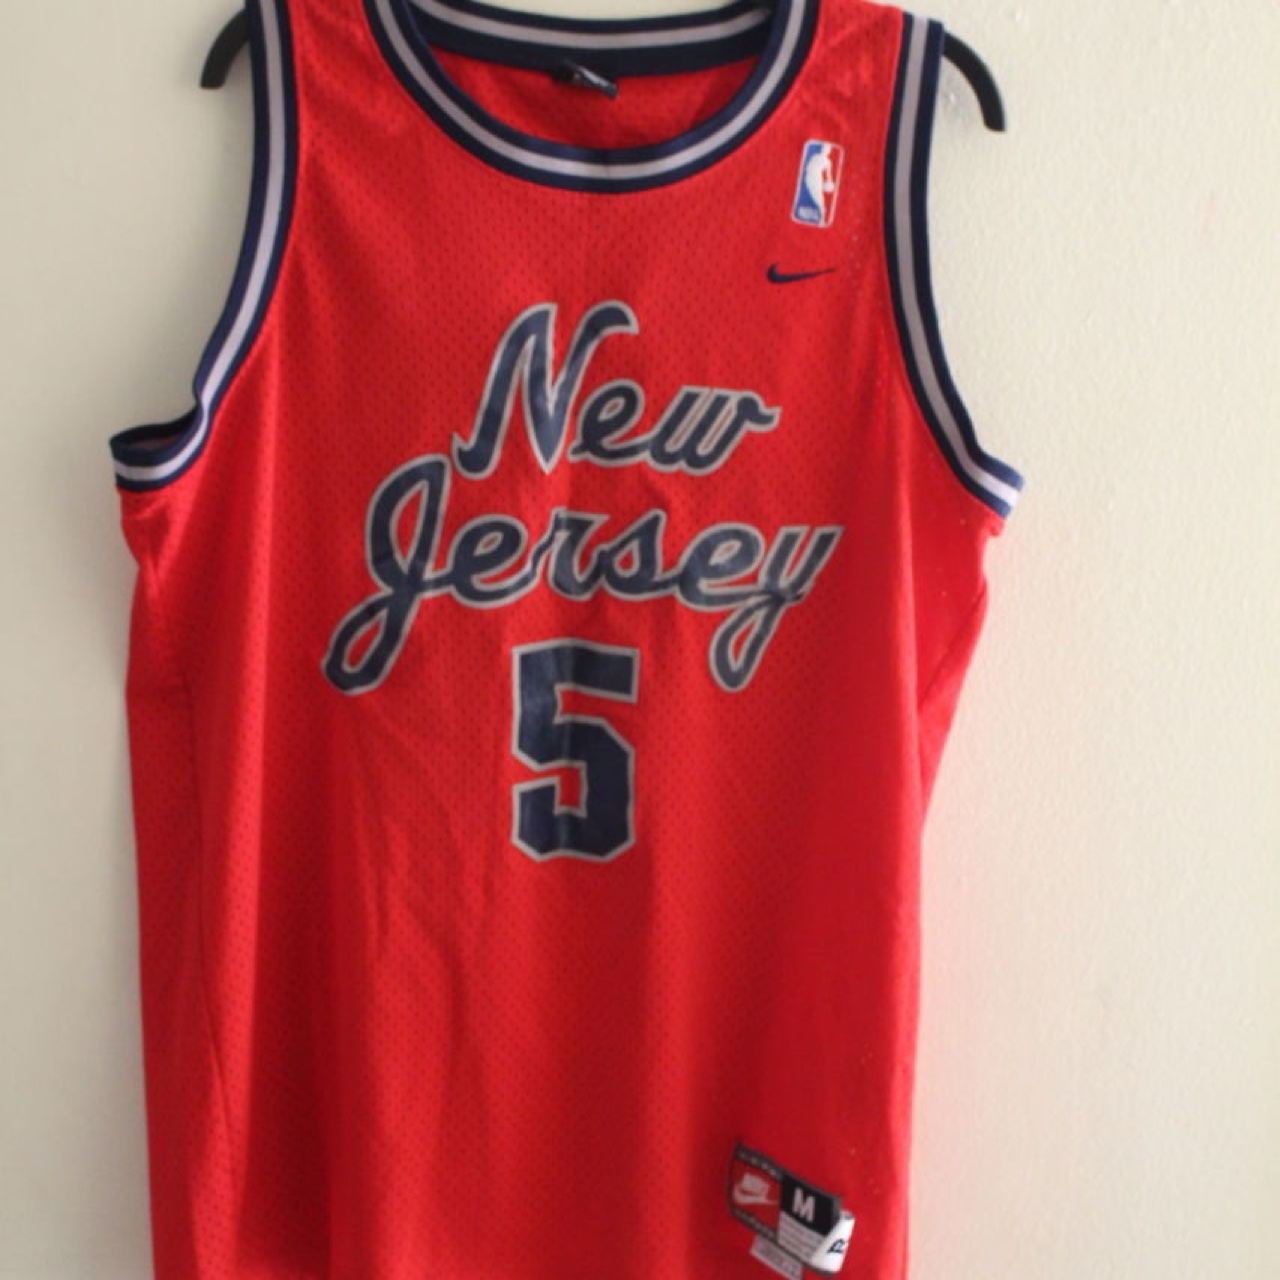 super popular 76238 a7983 Nike New Jersey nets jersey # 5 Jason Kidd size... - Depop